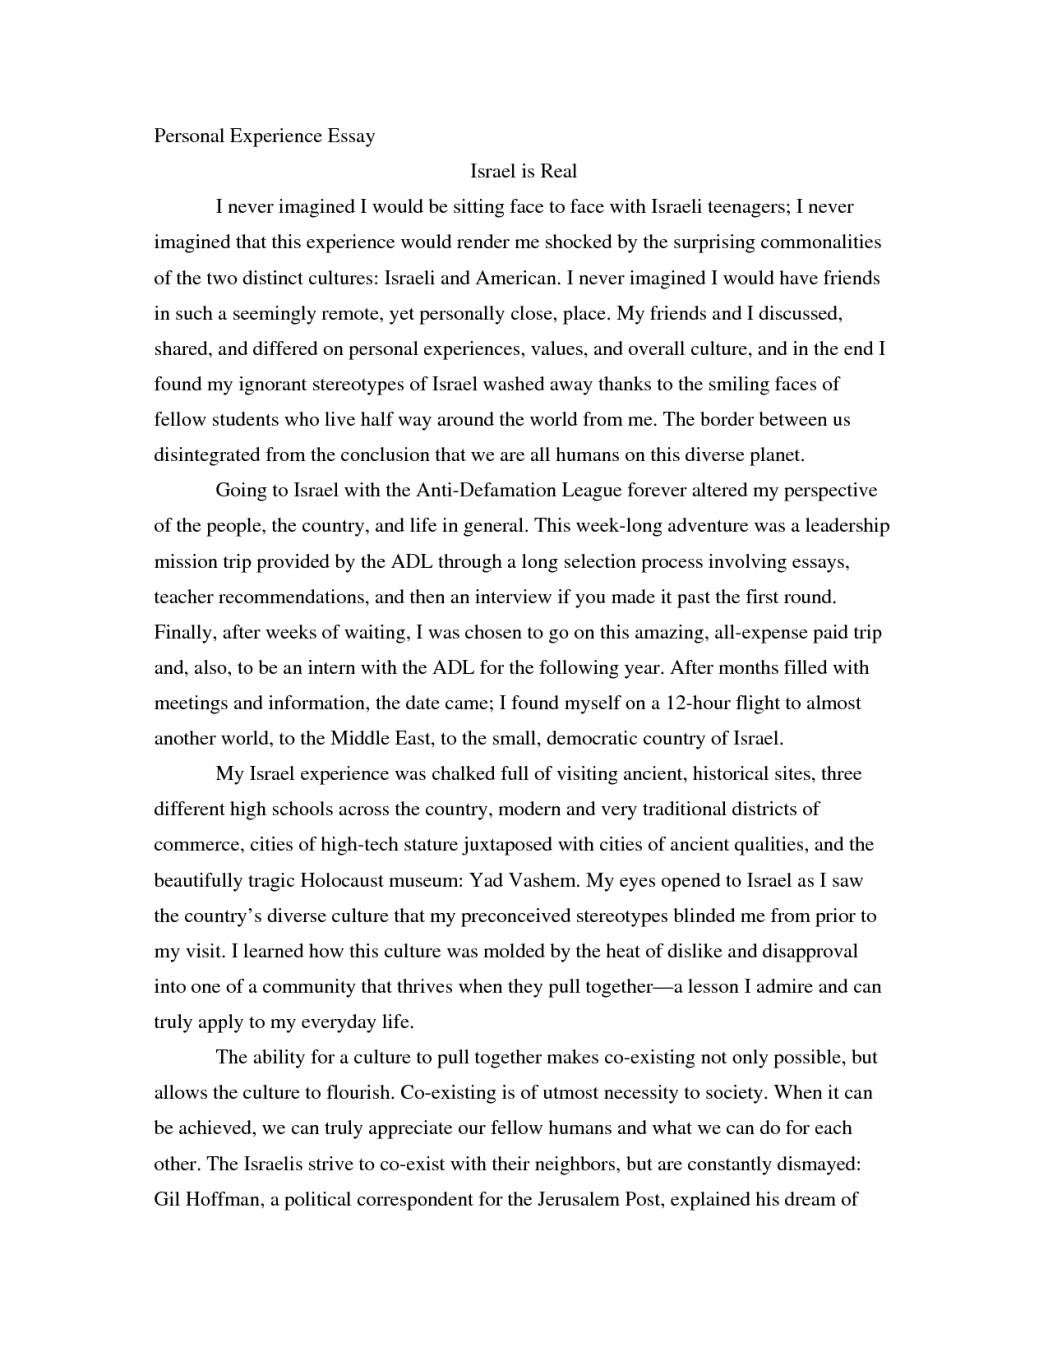 The Best Experience of My Life Essay - Words